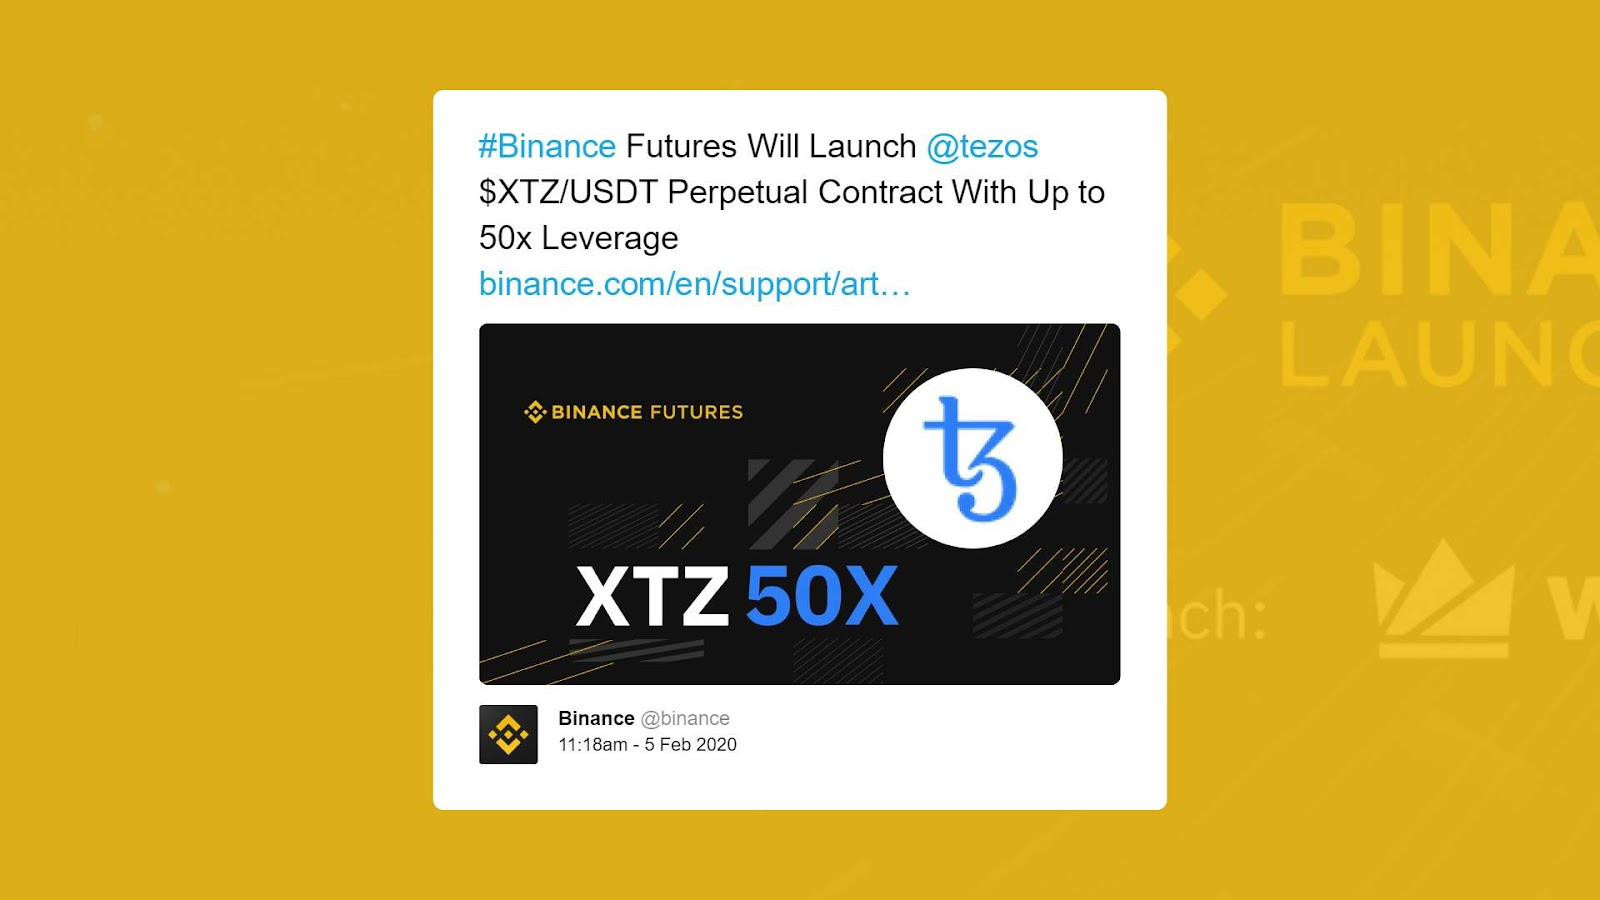 Binance launches Tezos perpetual contracts